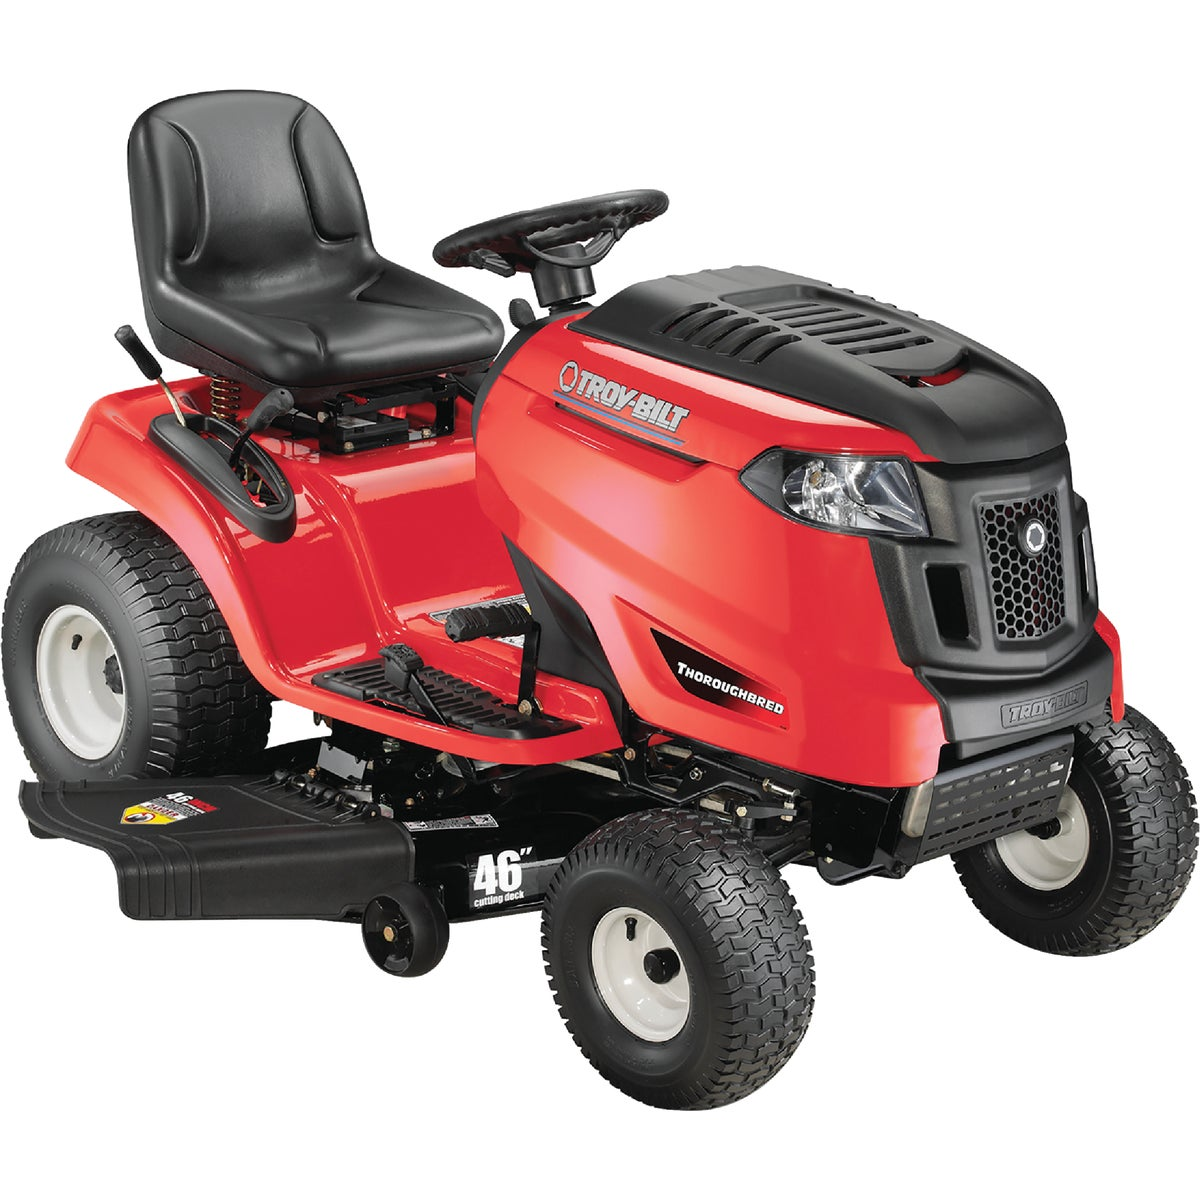 "46"" LAWN TRACTOR - 13AT91KT066 by M T D Products"